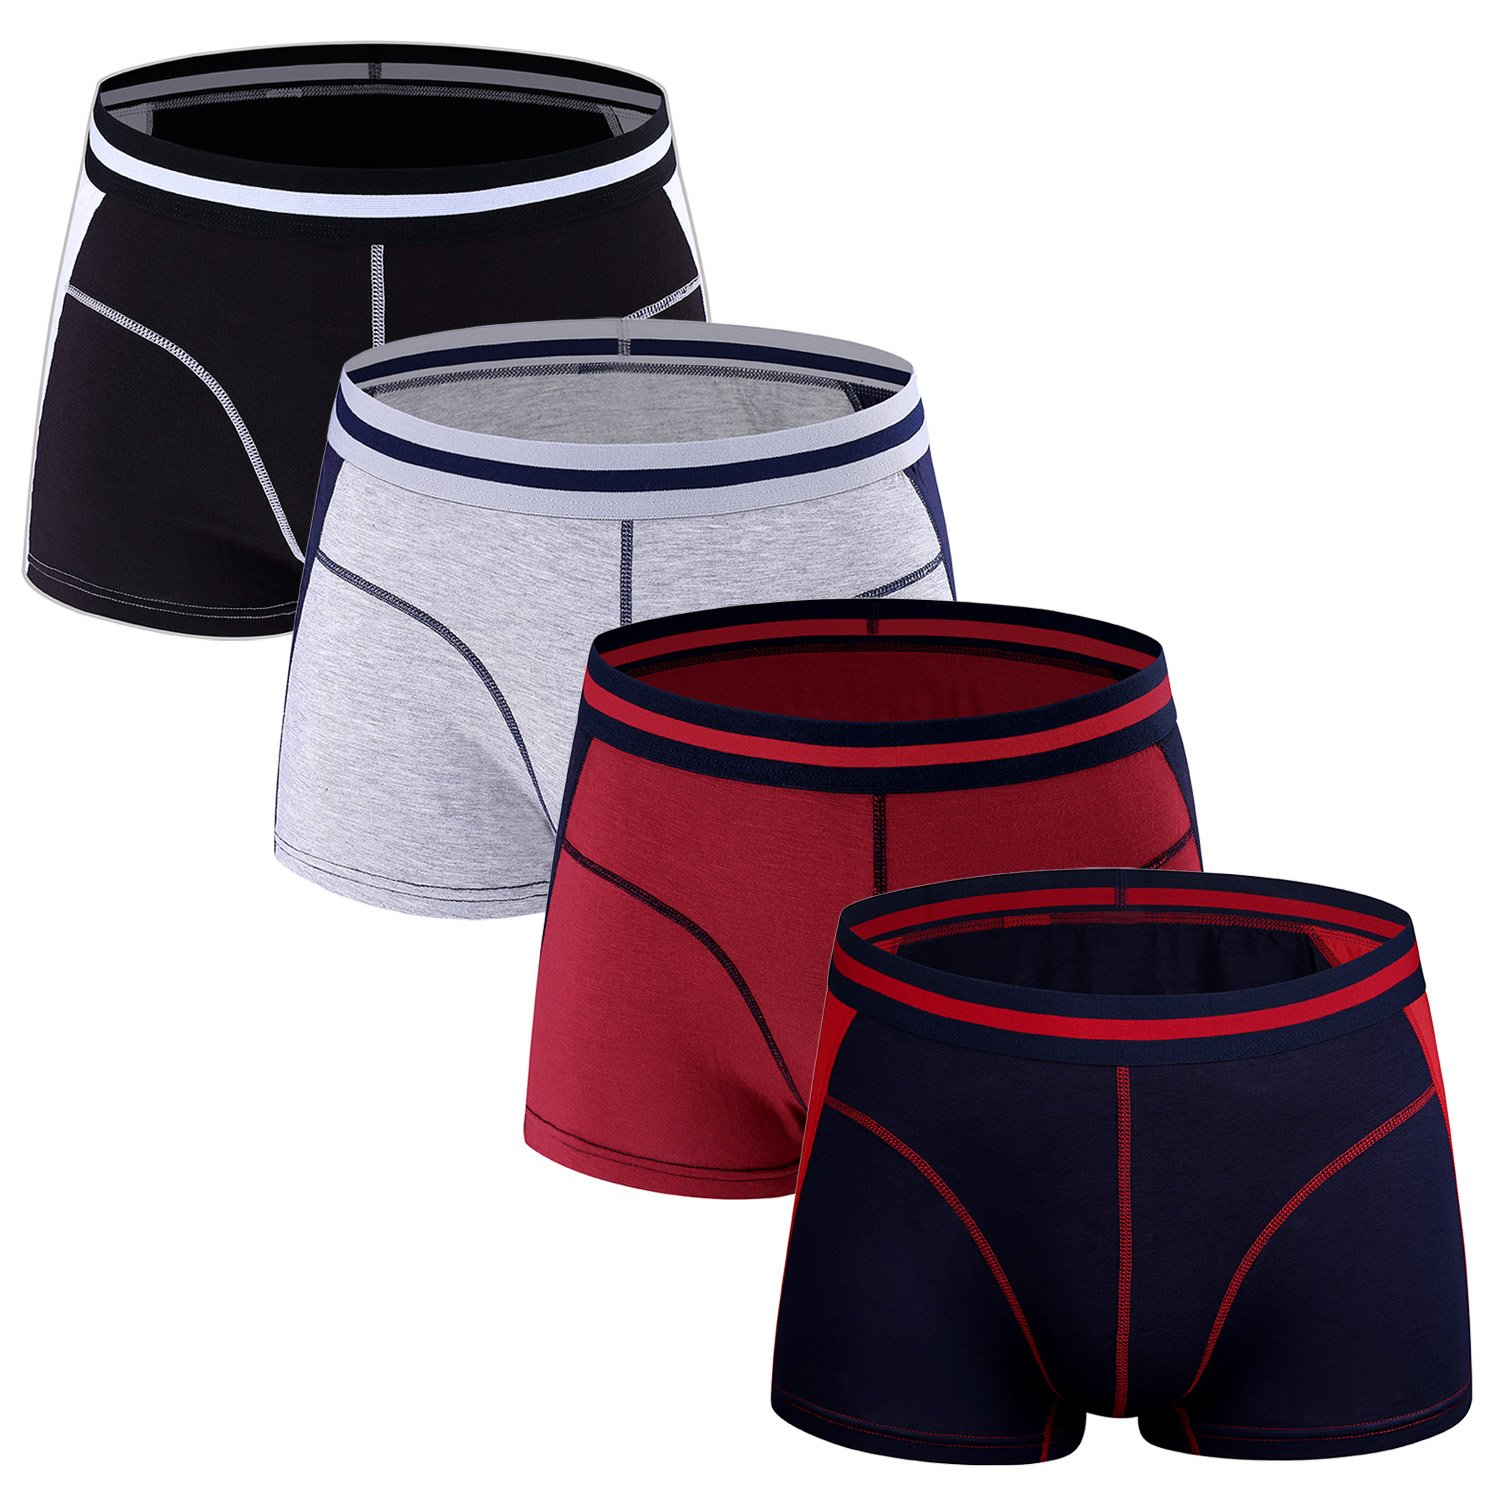 Men's Micro Modal Trunks Pack of 4 Underwear Soft Waistband Low Rise Boxer Briefs No Fly Pouch,Size S